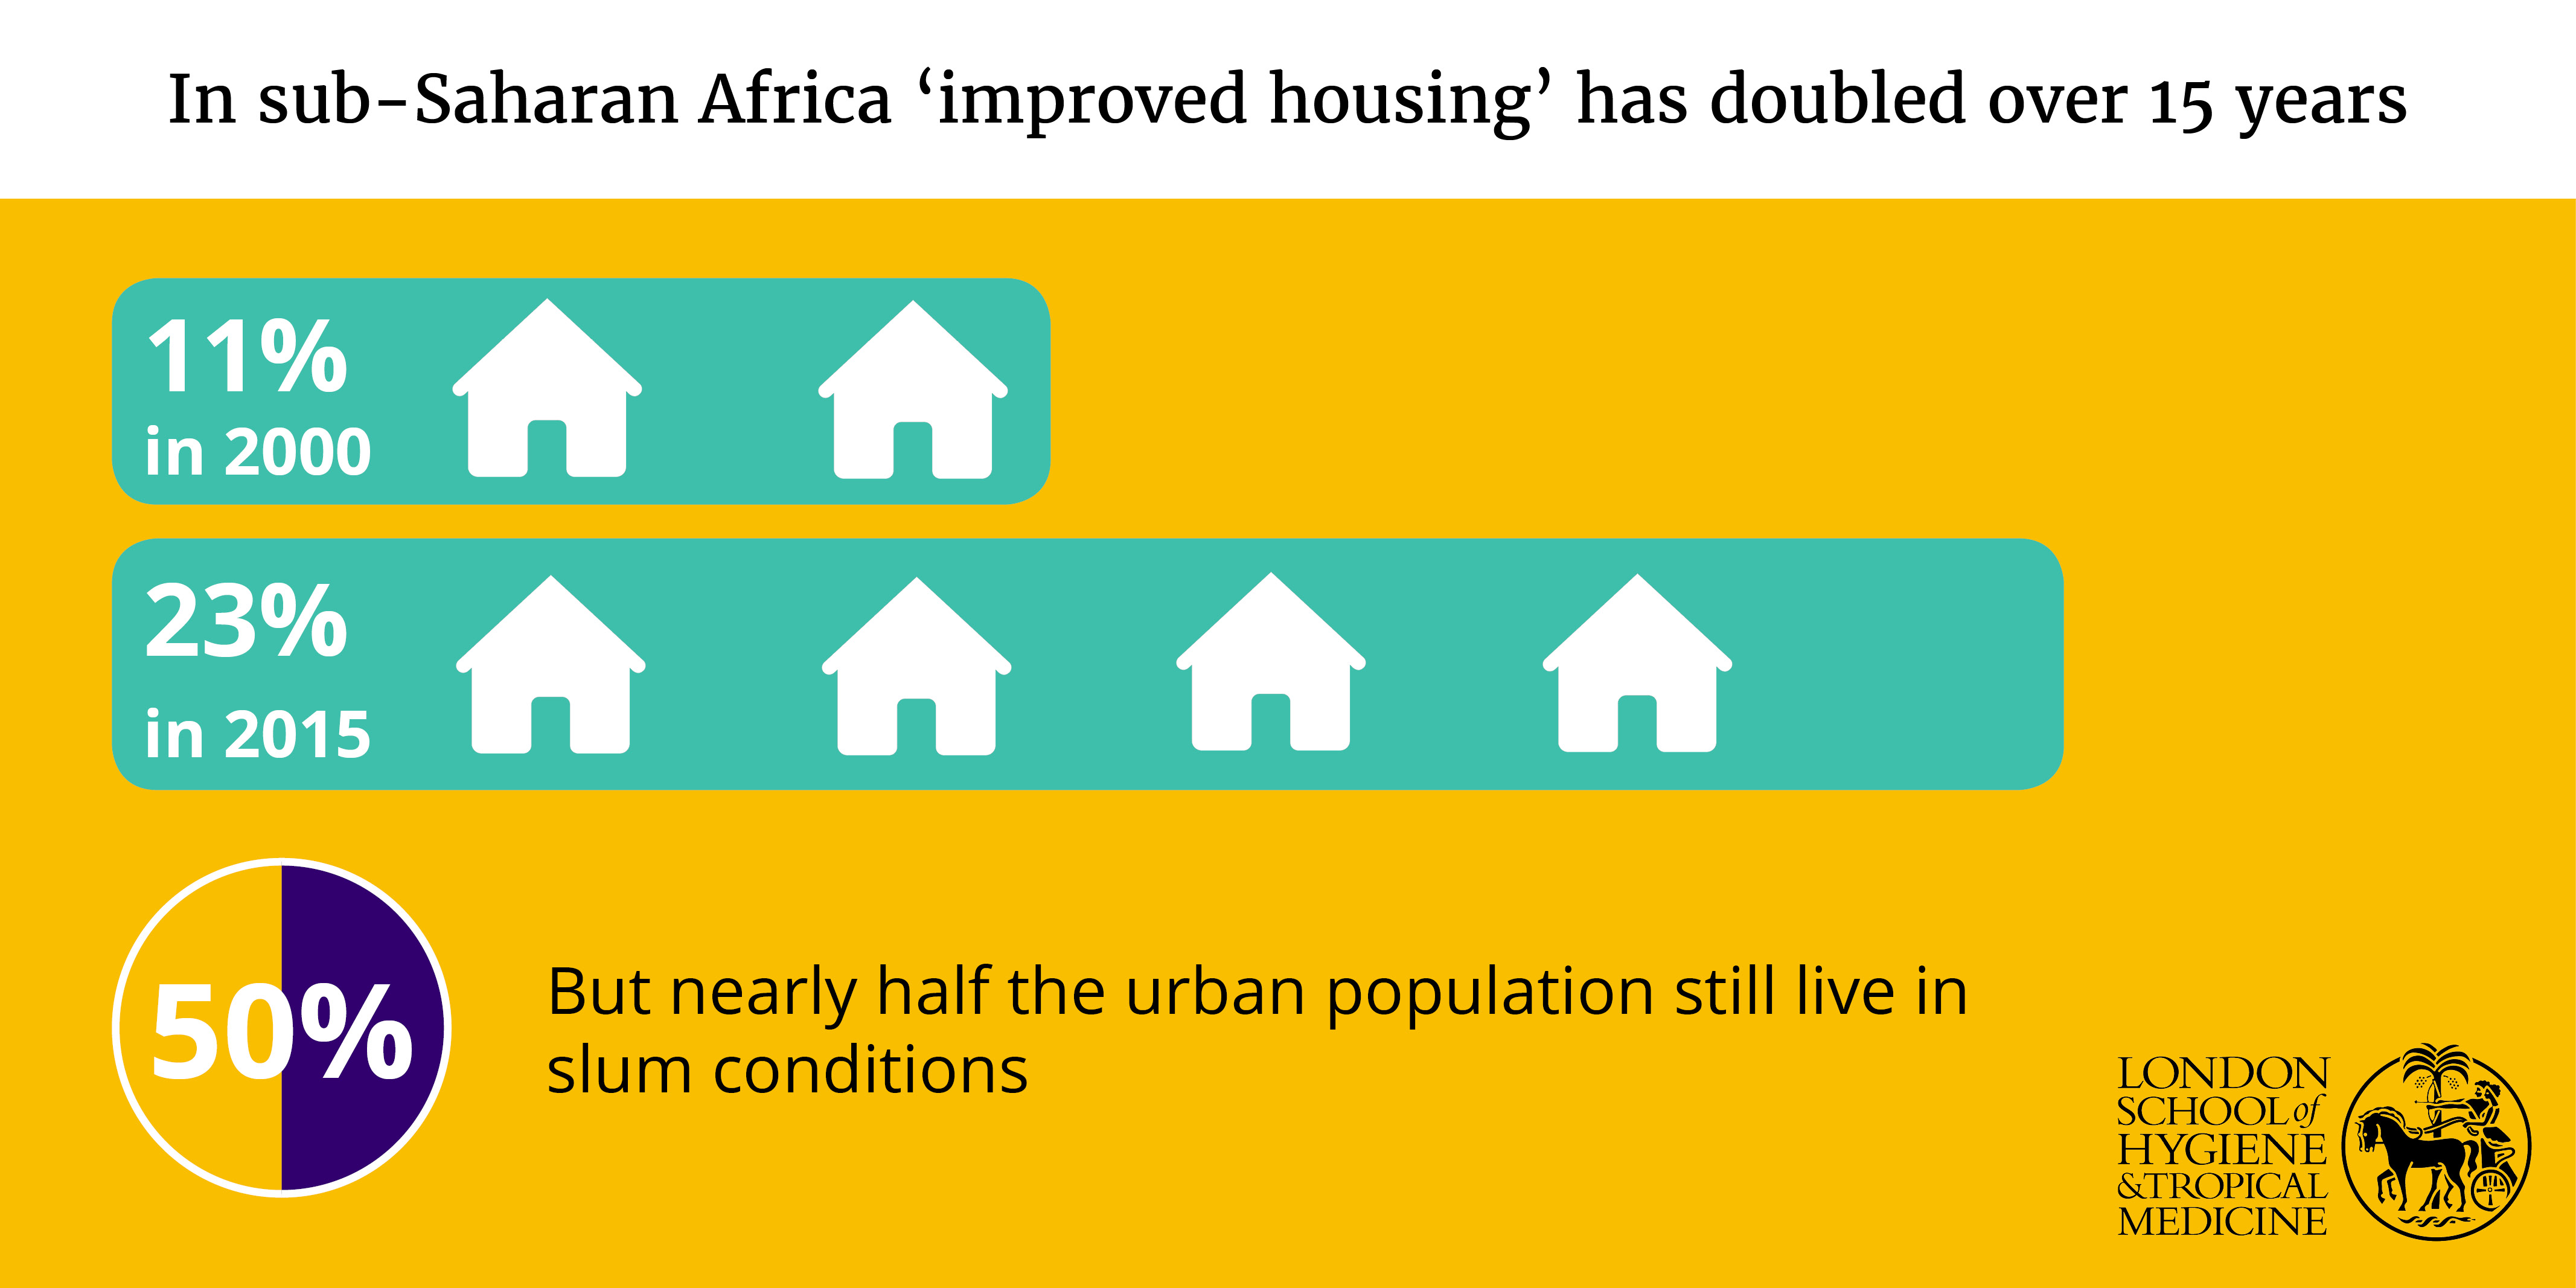 Caption: Infographic showing housing quality in sub-Saharan Africa. Credit: LSHTM